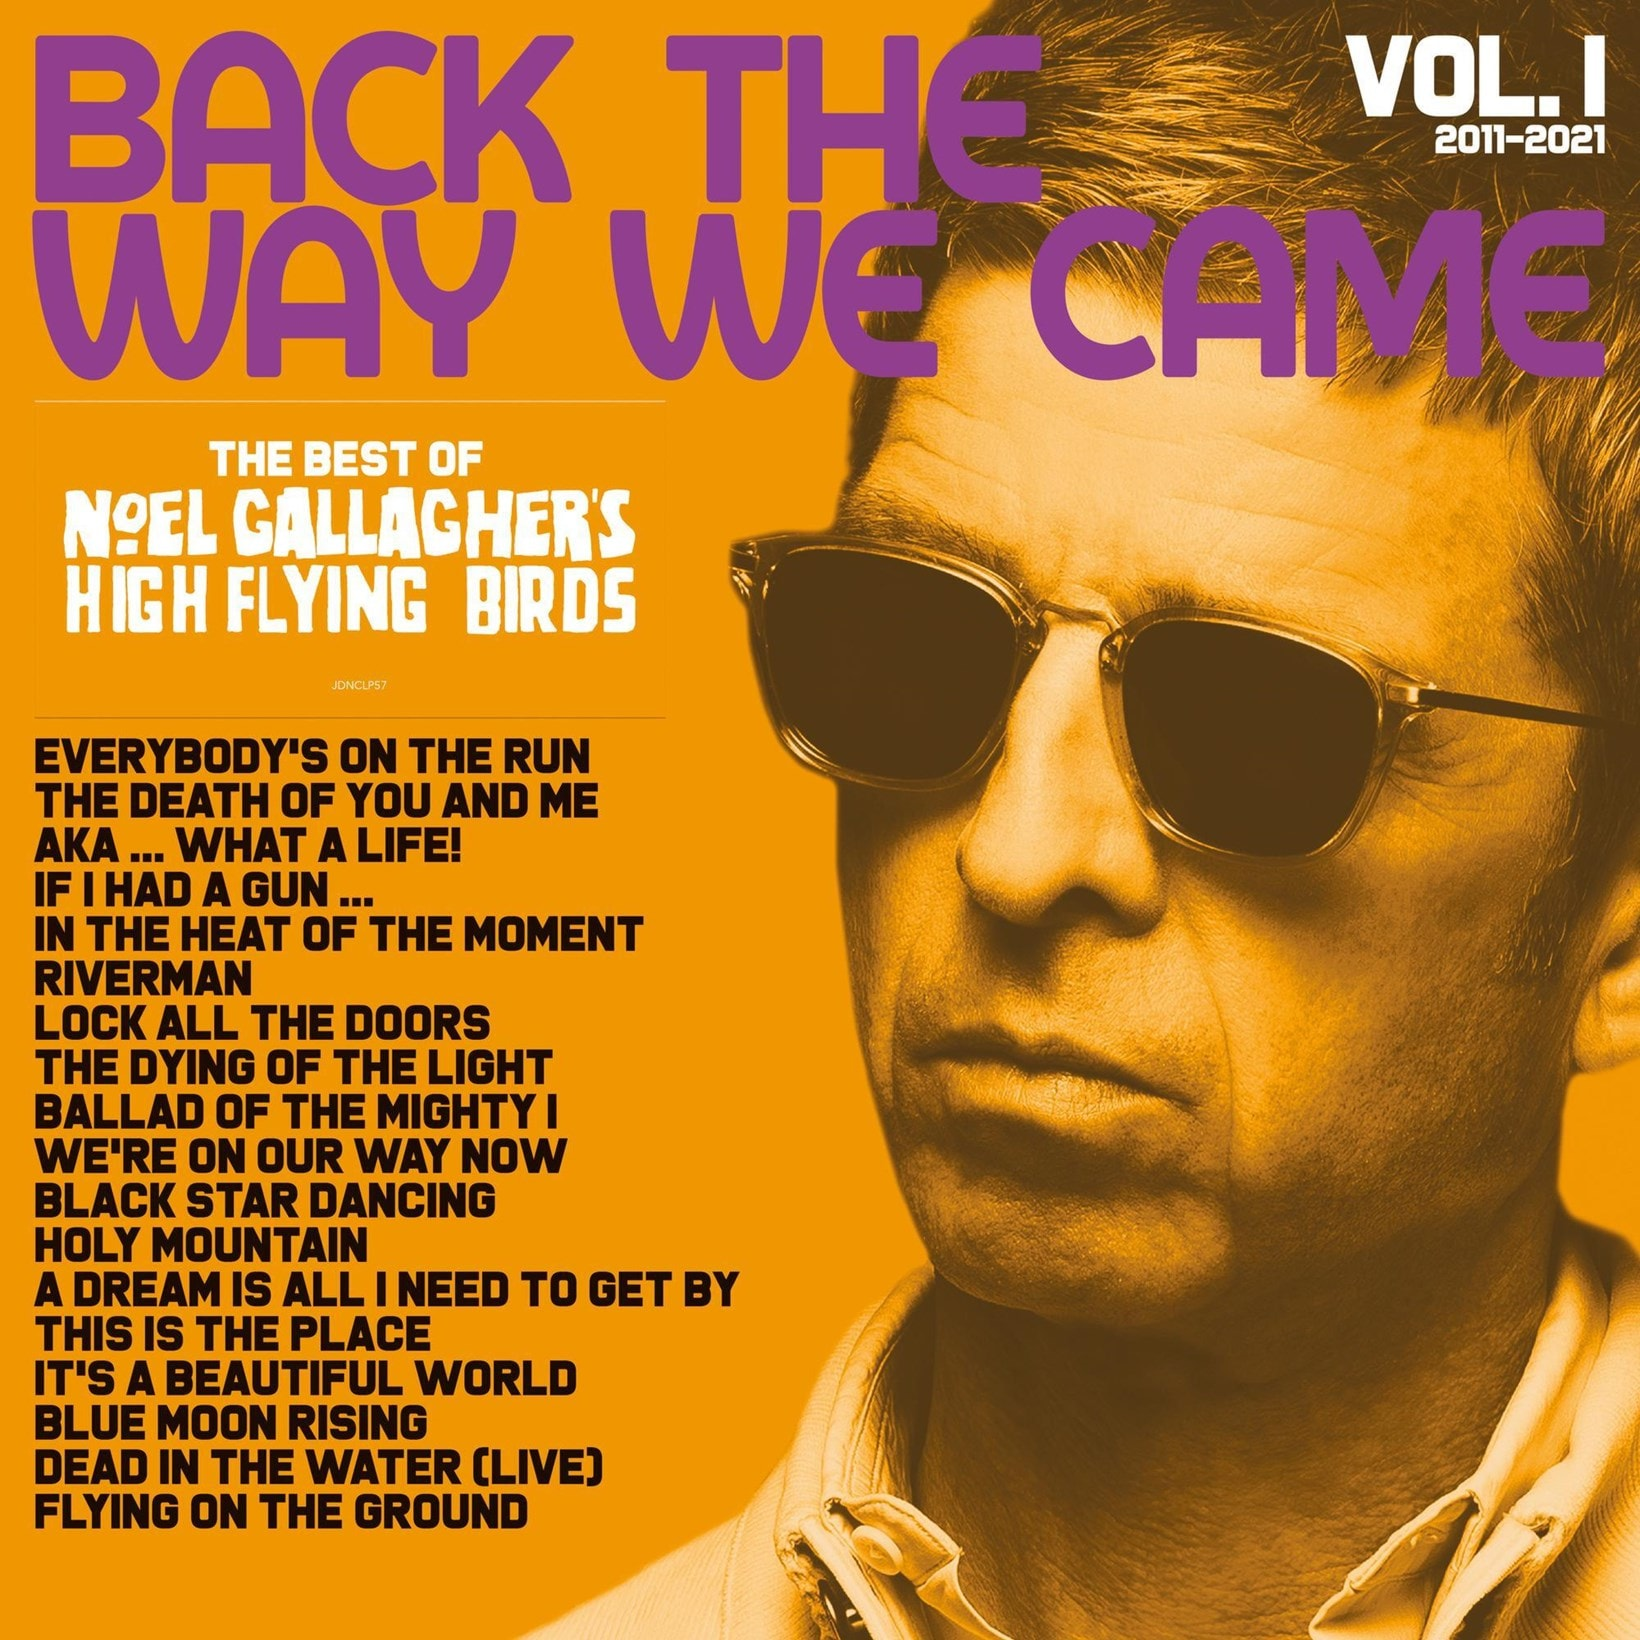 Back The Way We Came: Vol 1 (2011 - 2021)